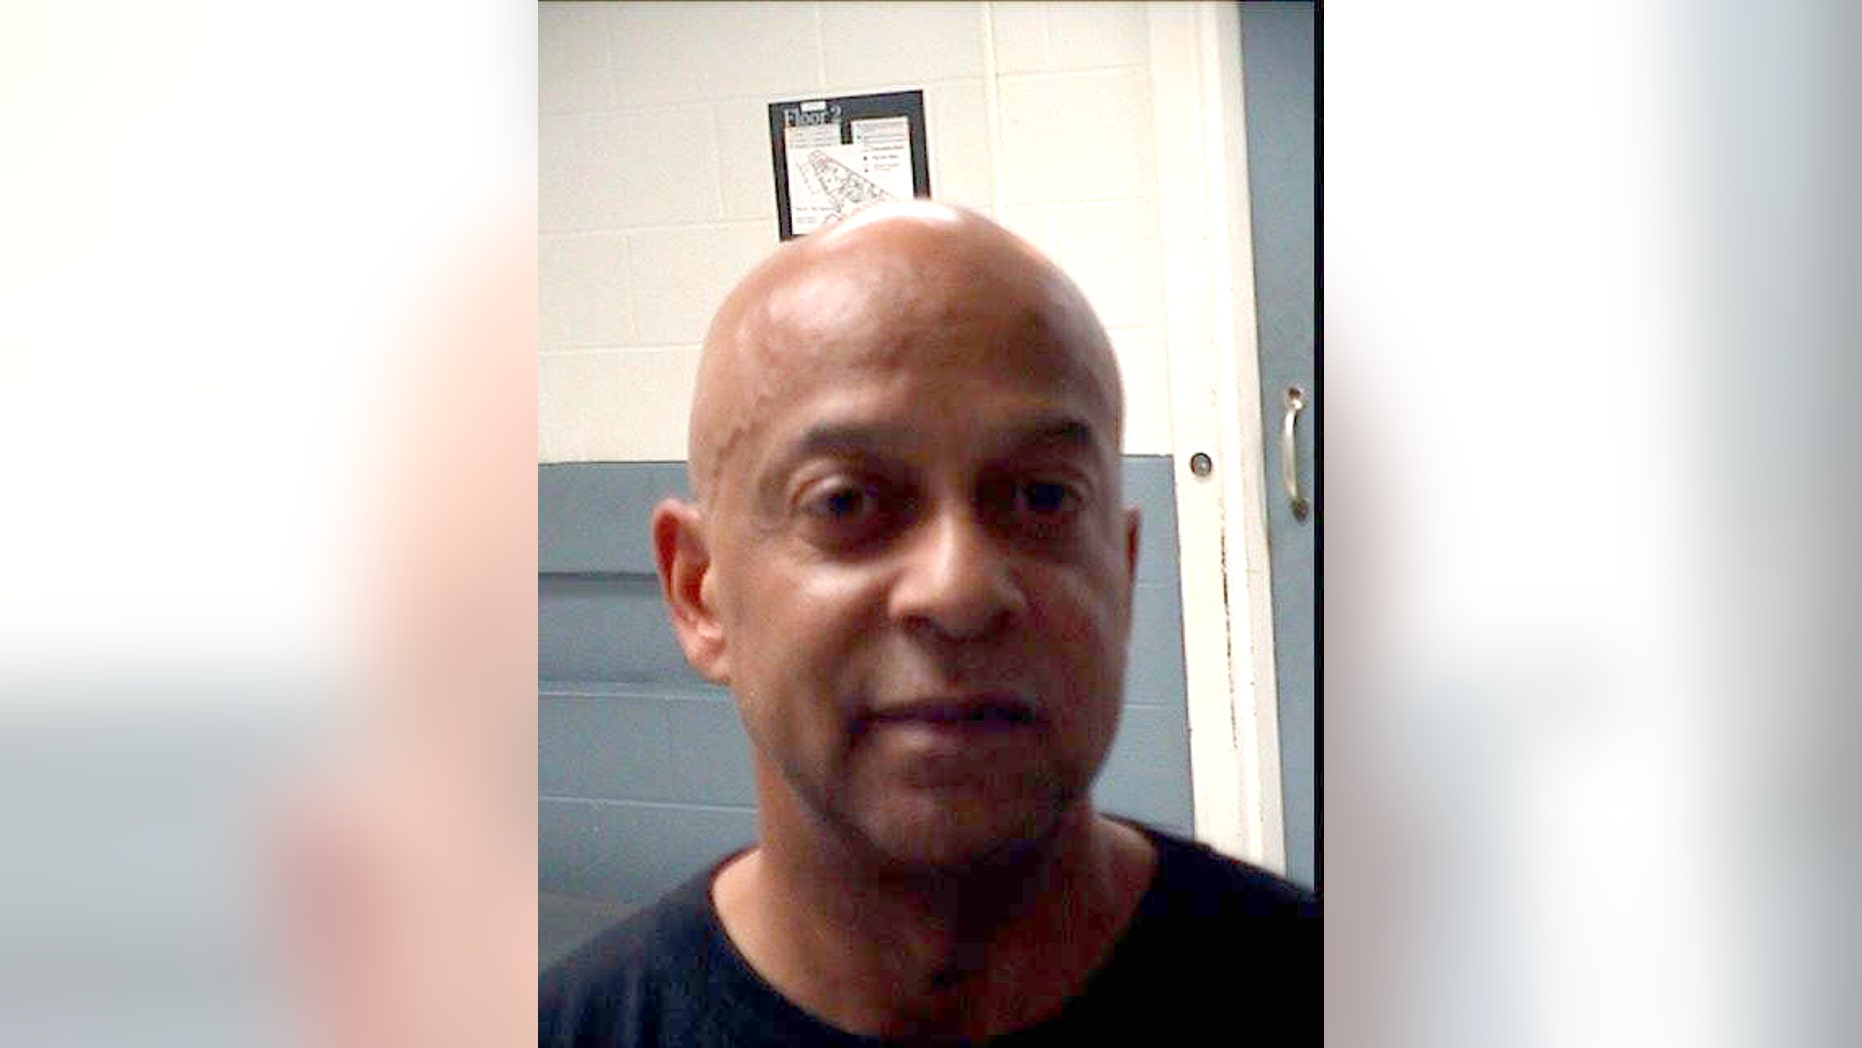 DeKalb County Sheriff Jeffrey Mann is seen in an undated photo provided by the Atlanta Department of Corrections. Mann was arrested Saturday, May 7, 2017, on indecency, obstruction charges after he exposed himself to a police officer in an Atlanta park and then led the officer on a foot chase, according to a police report. (Atlanta Department of Corrections via AP)